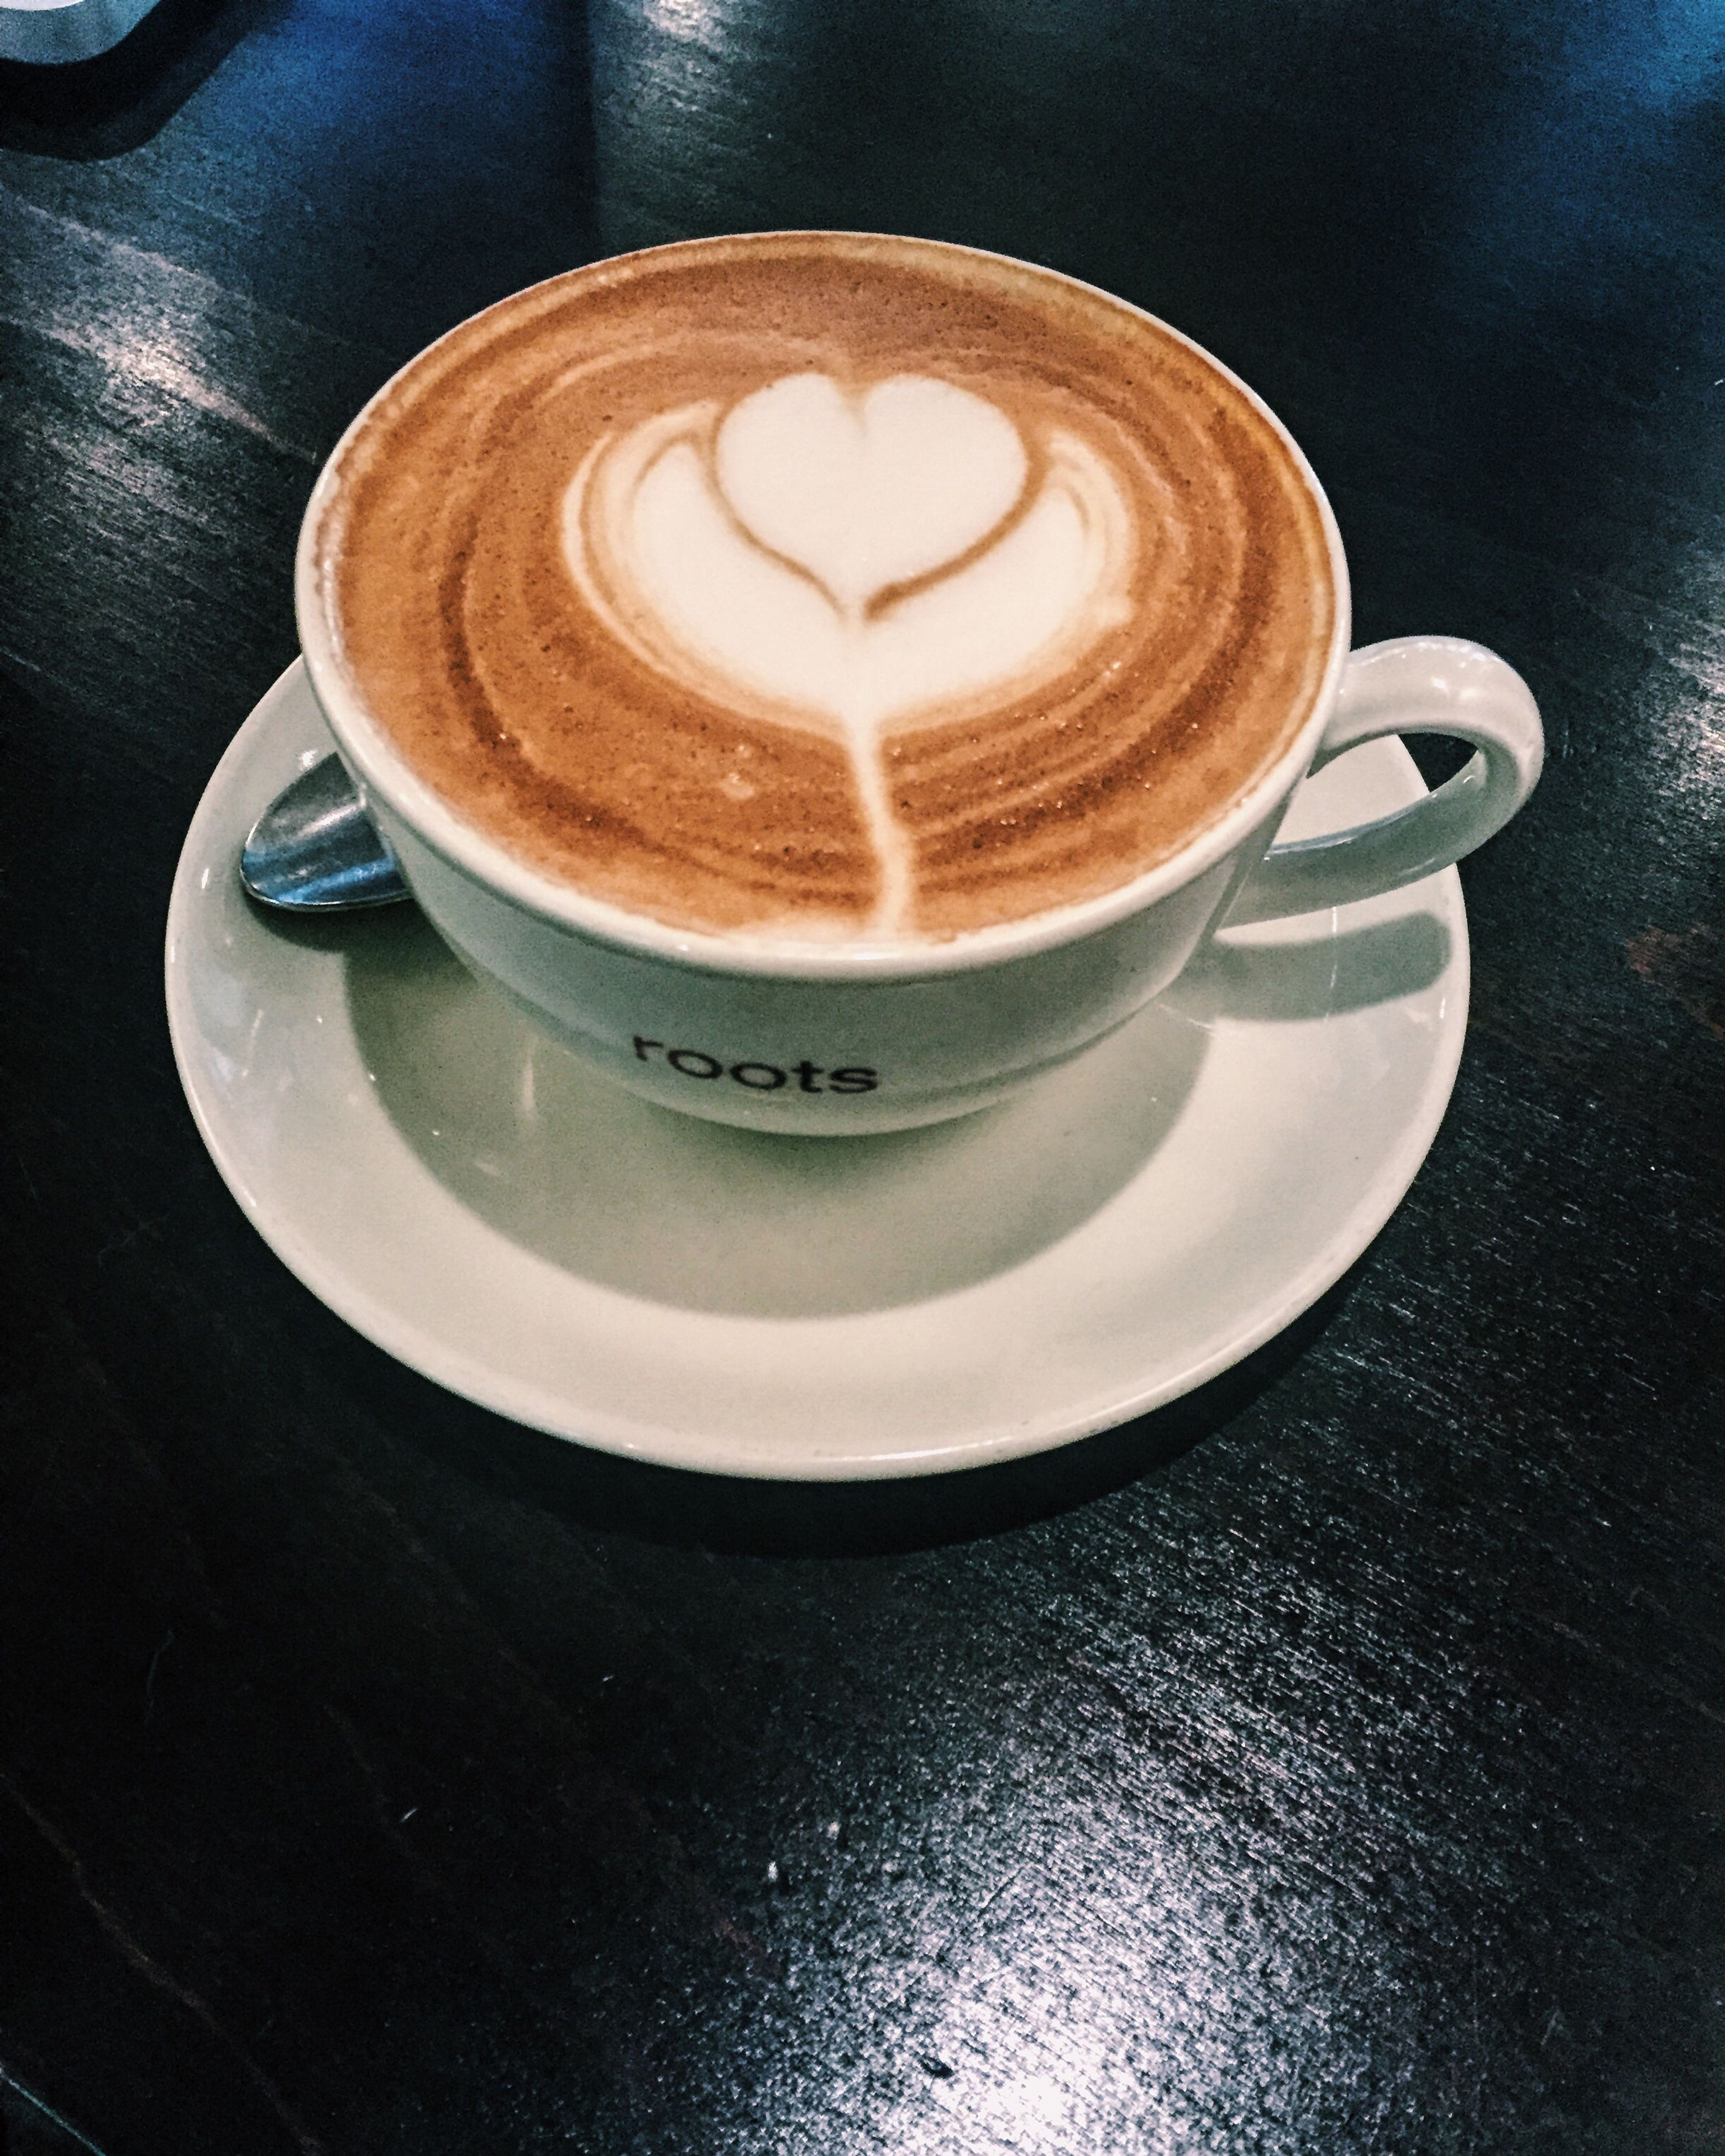 coffee cup, drink, coffee - drink, refreshment, saucer, food and drink, froth art, frothy drink, cappuccino, indoors, coffee, table, freshness, still life, cup, close-up, latte, heart shape, high angle view, spoon